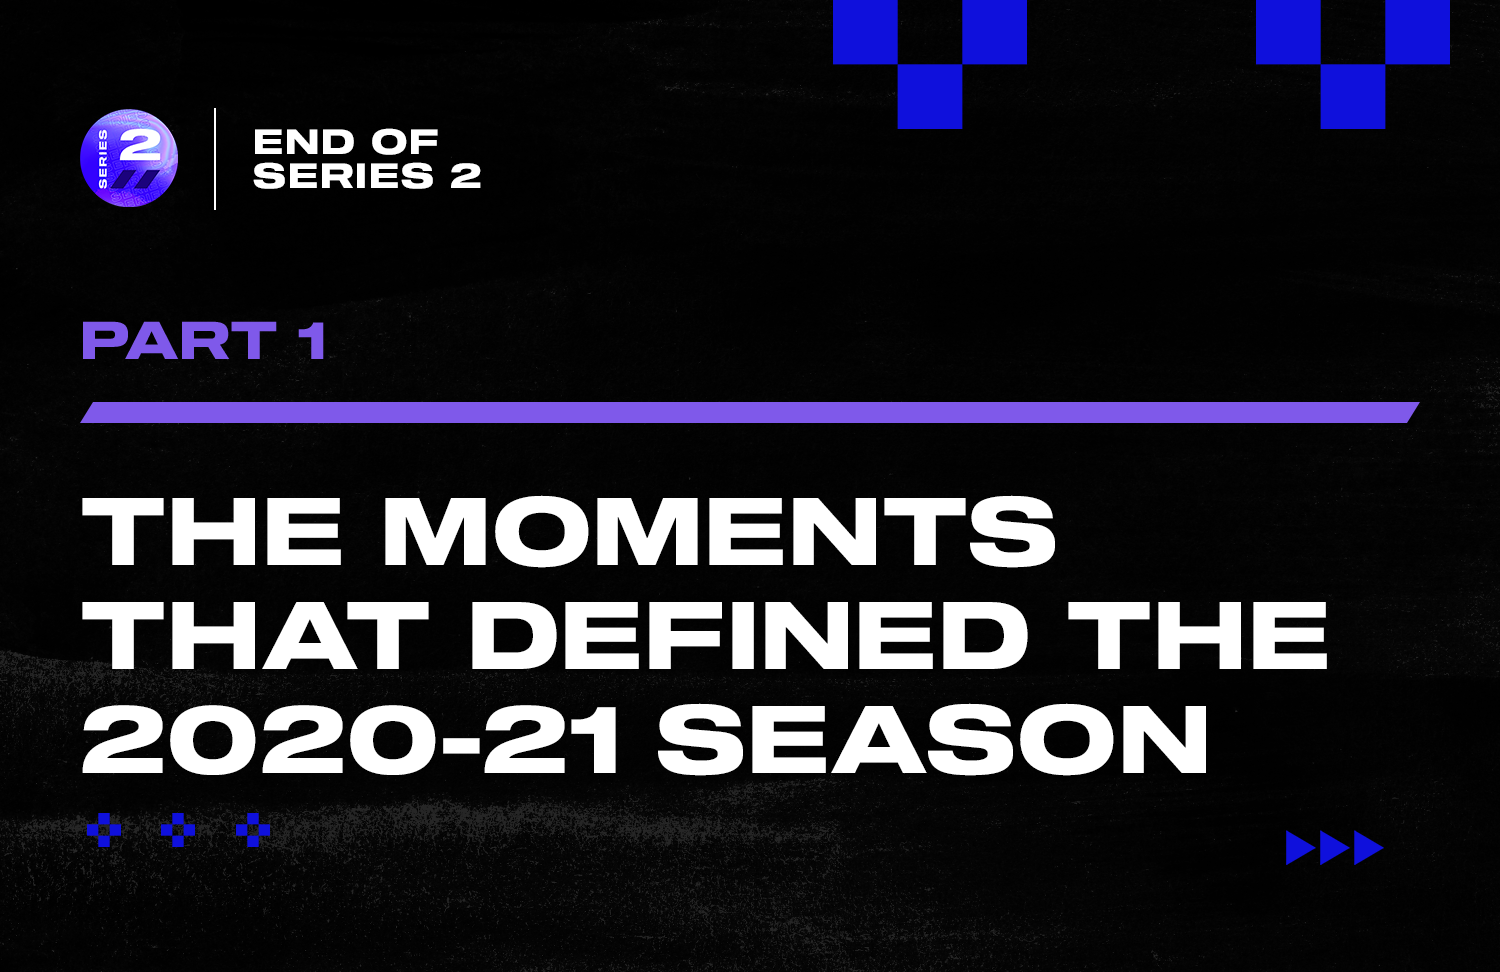 Relive the best plays of the NBA Season x Series 2 through Top Shot Moments in Part 1 of our year in review.